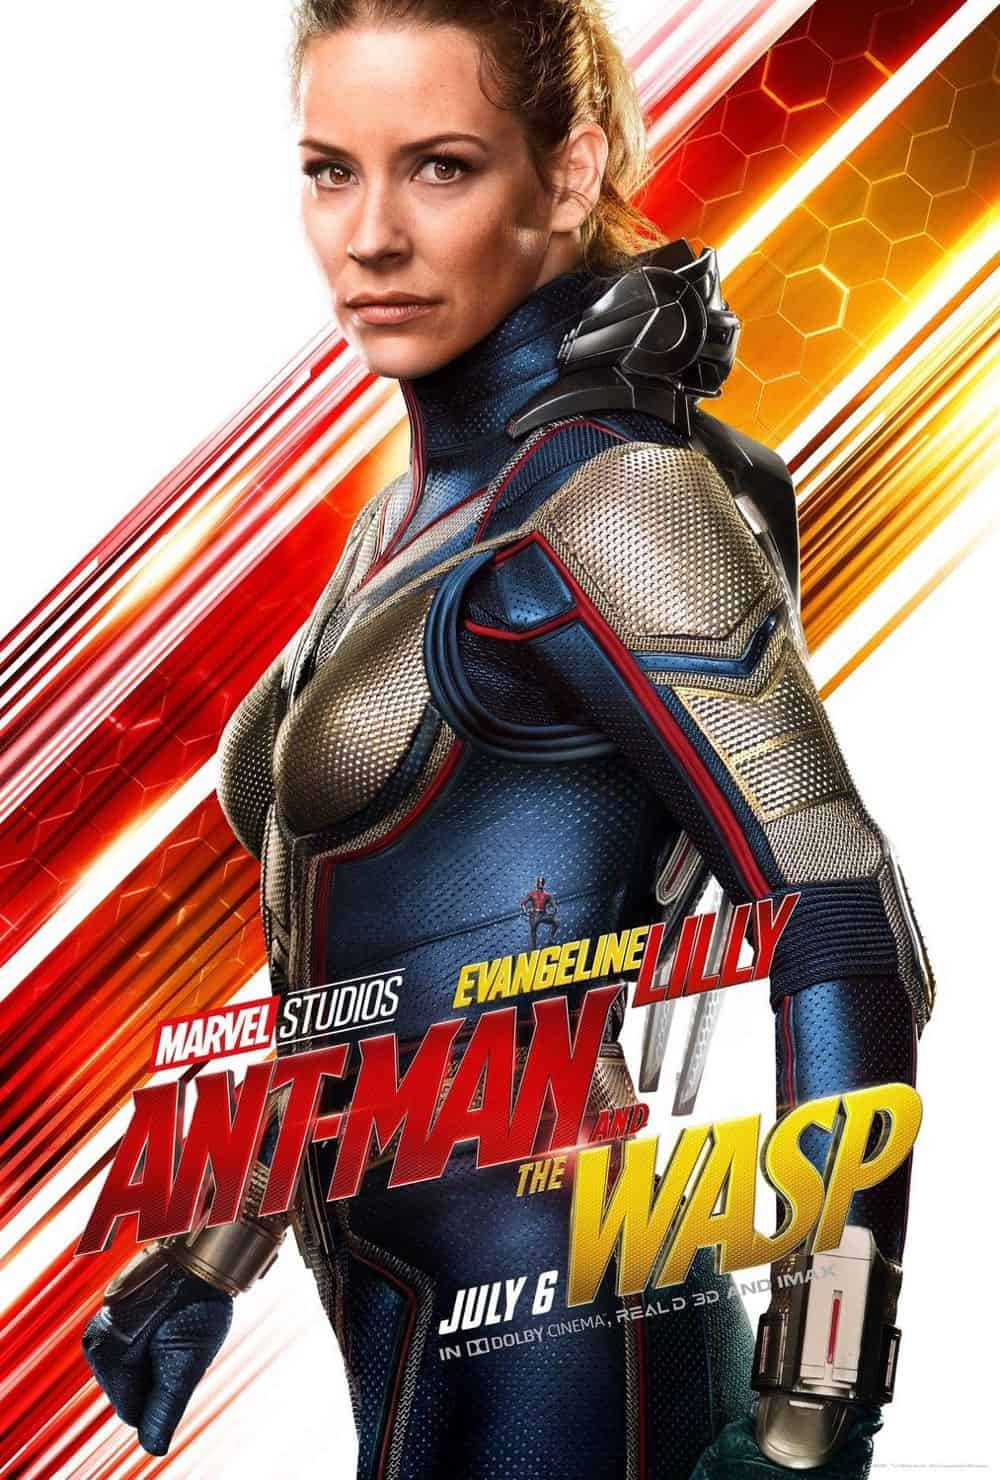 Ant-Man-And-The-Wasp-Movie-Character-Poster-Evangeline-Lilly